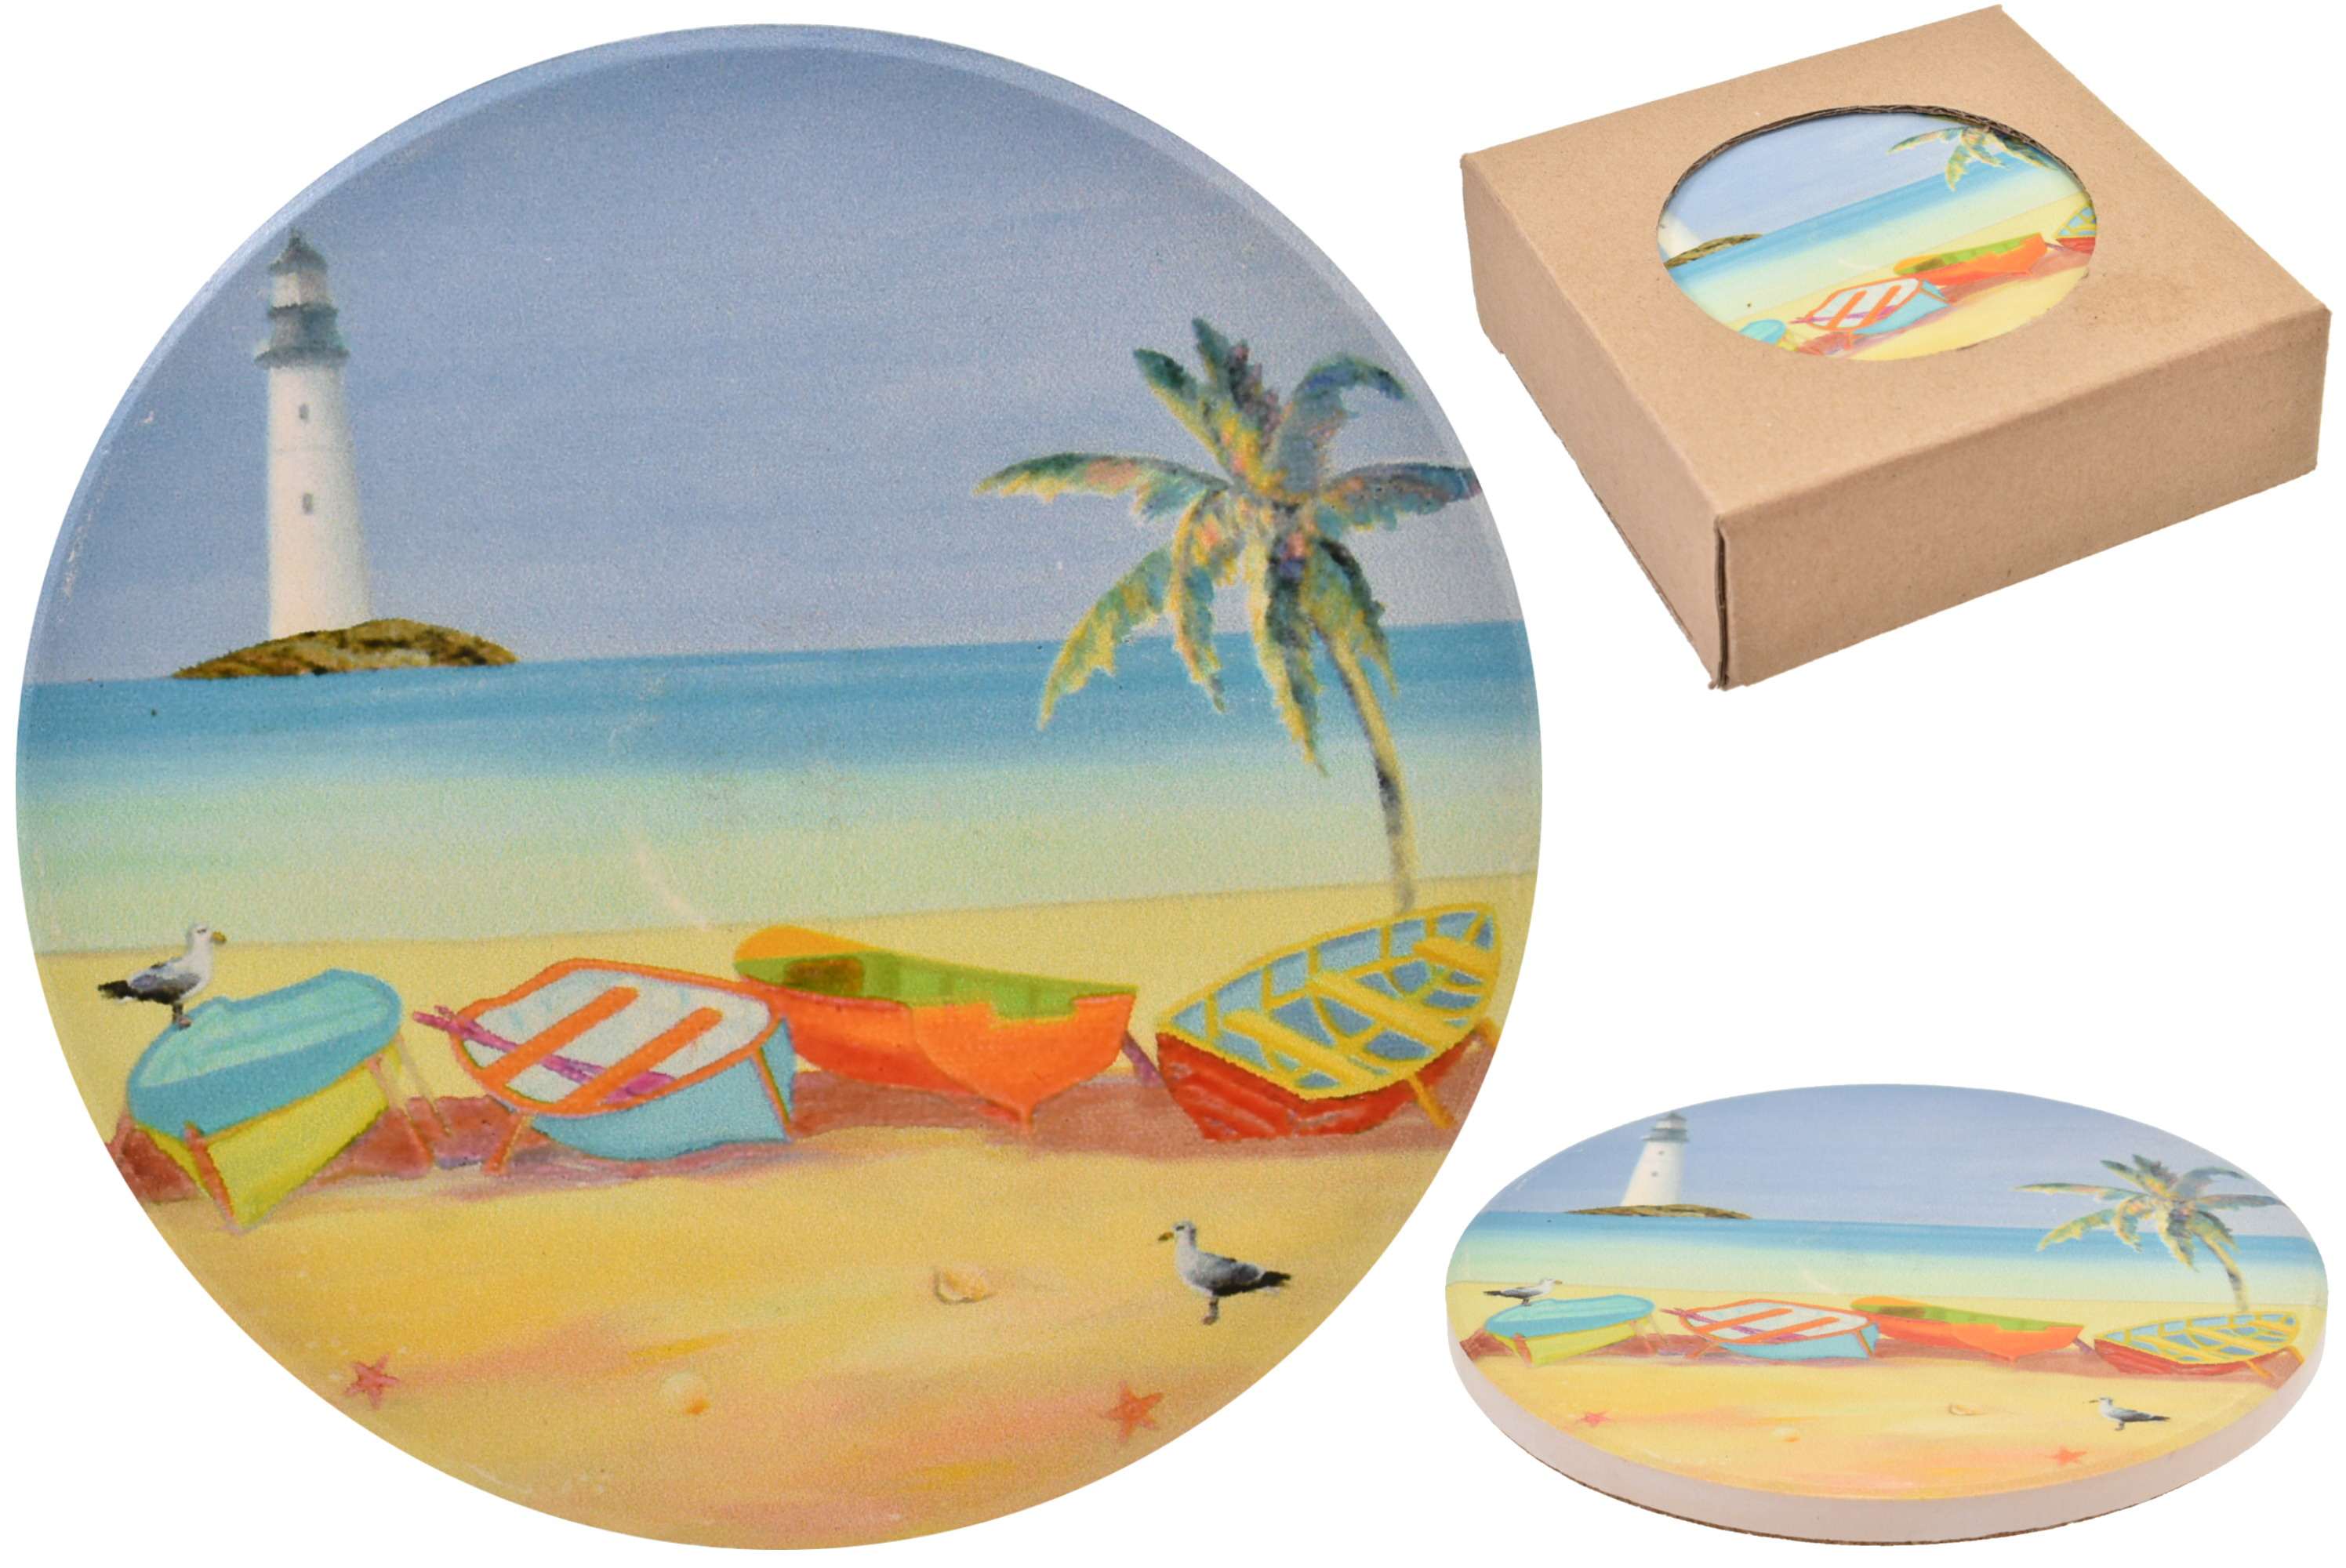 Lighthouse Design Coasters Set Of 4 In Window Gift Box